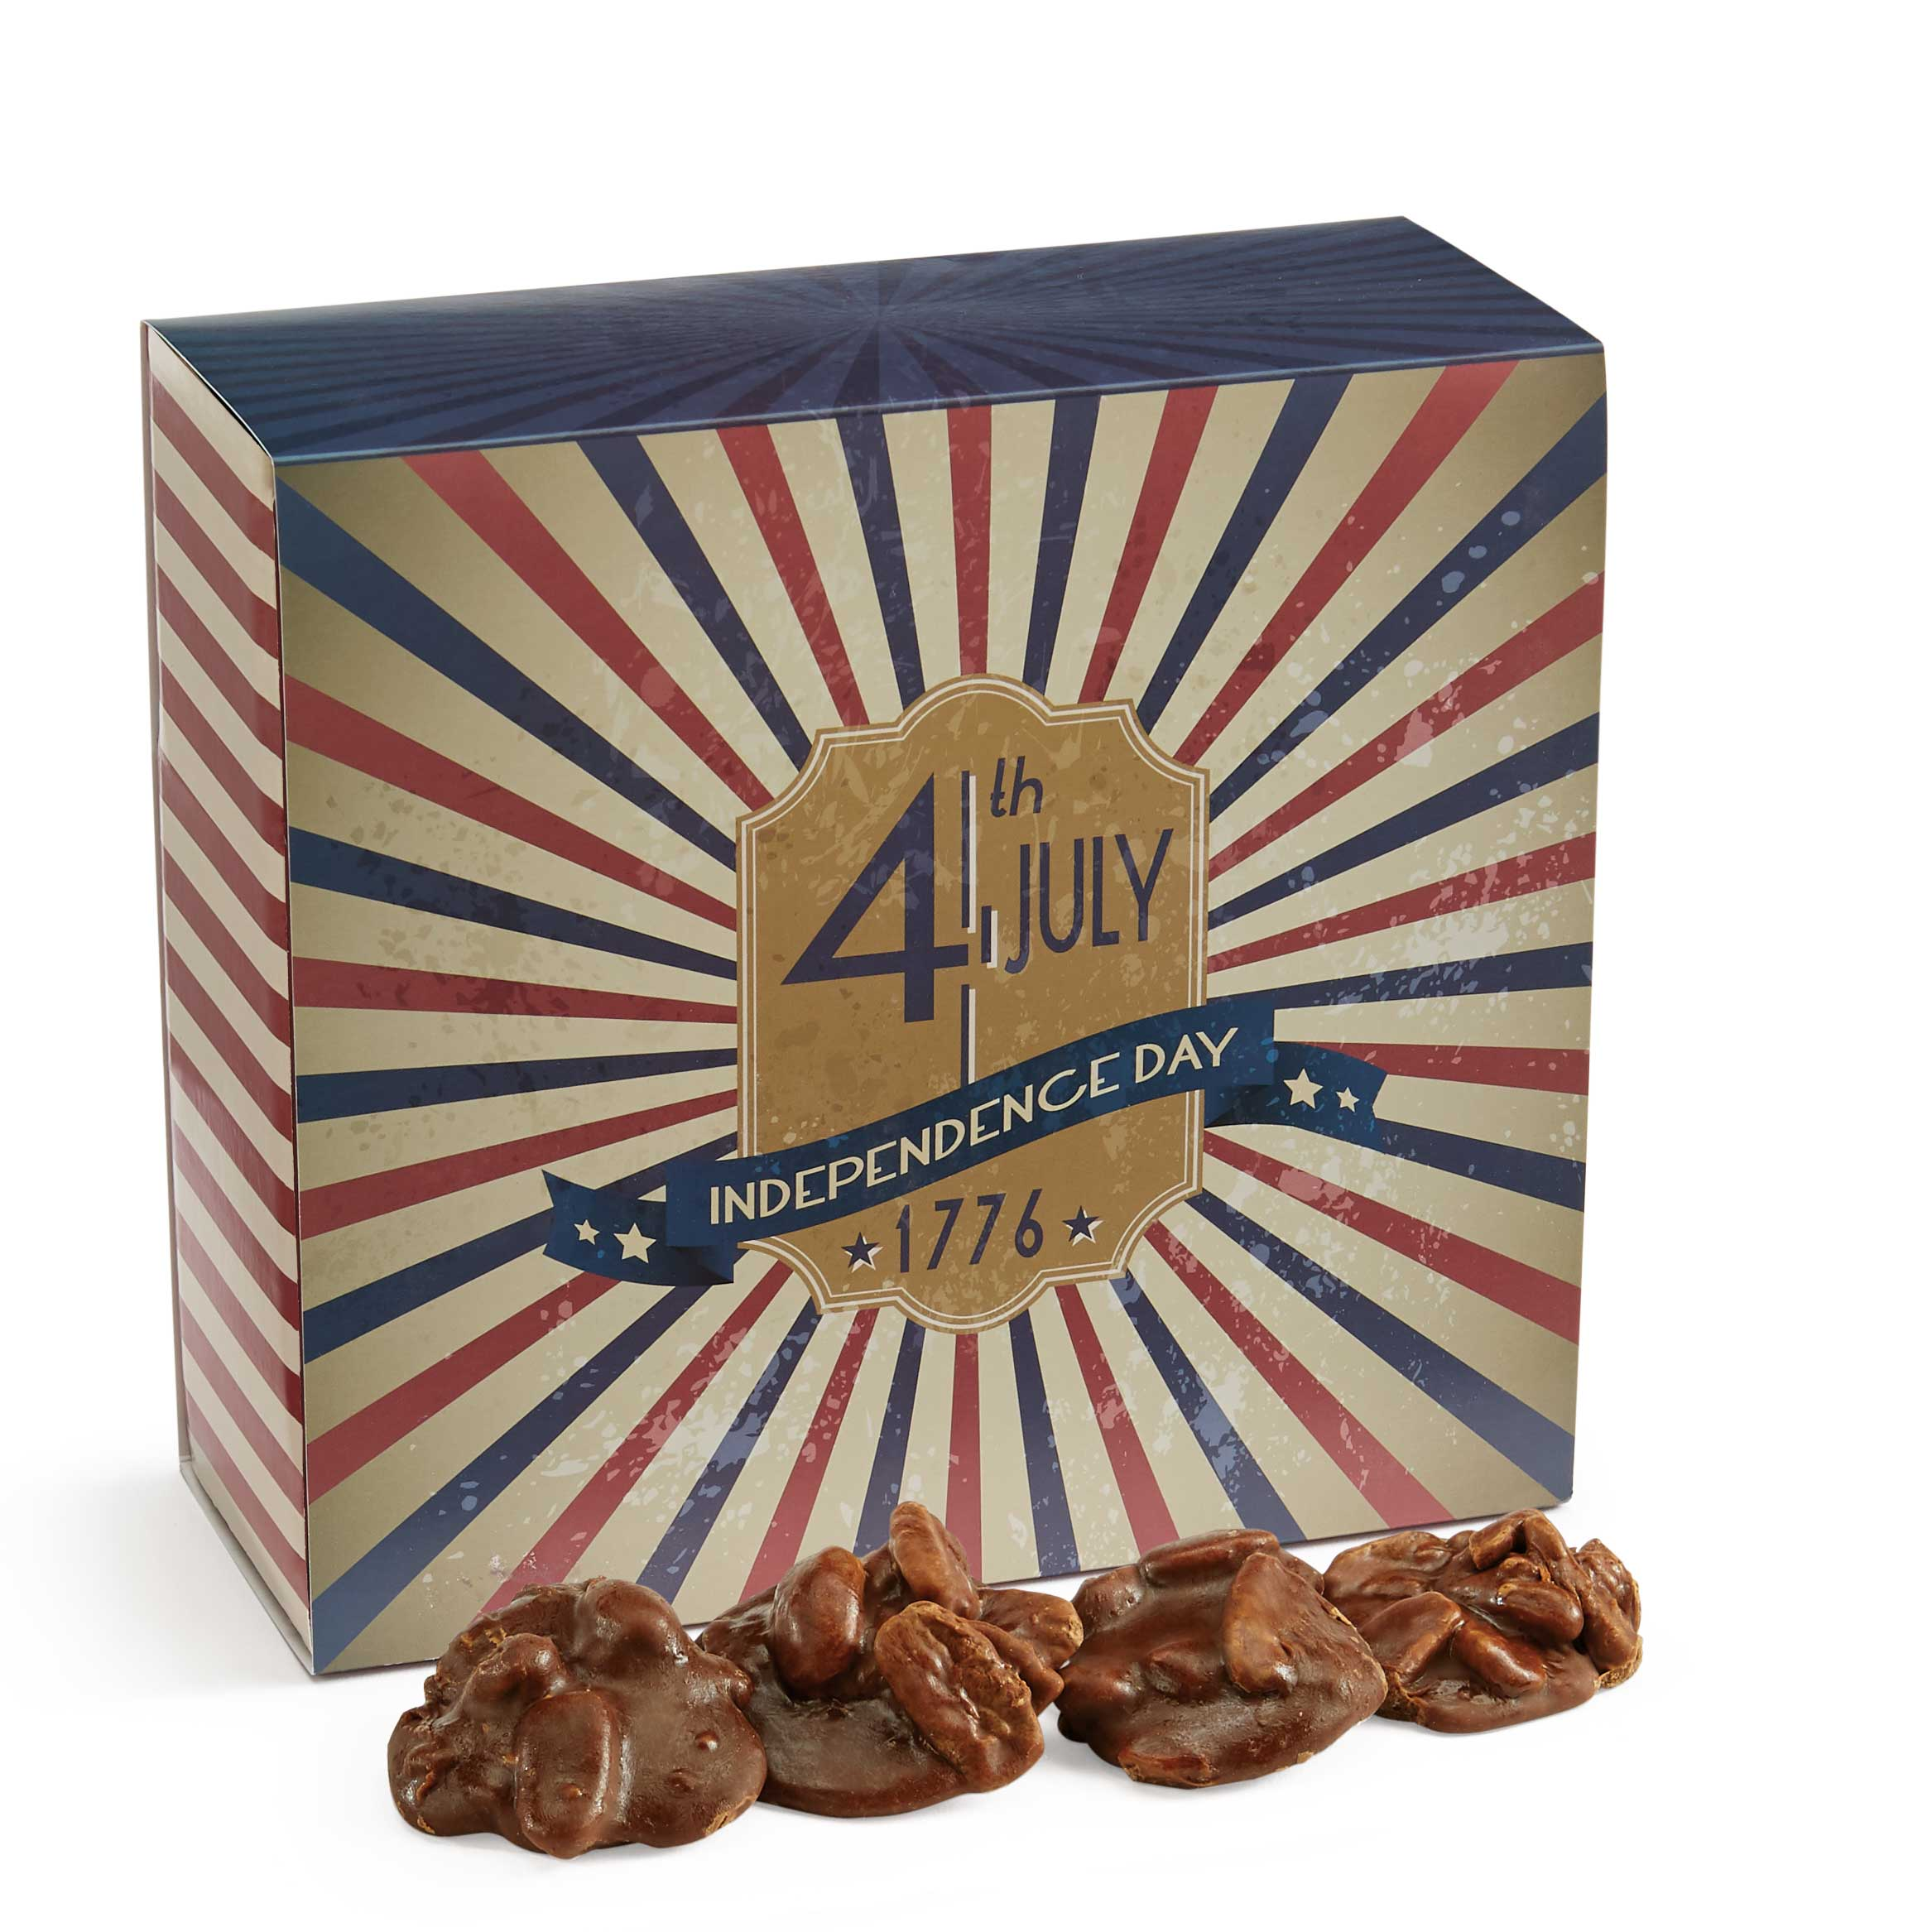 24 Piece Chocolate Pralines in the 4th of July Gift Box